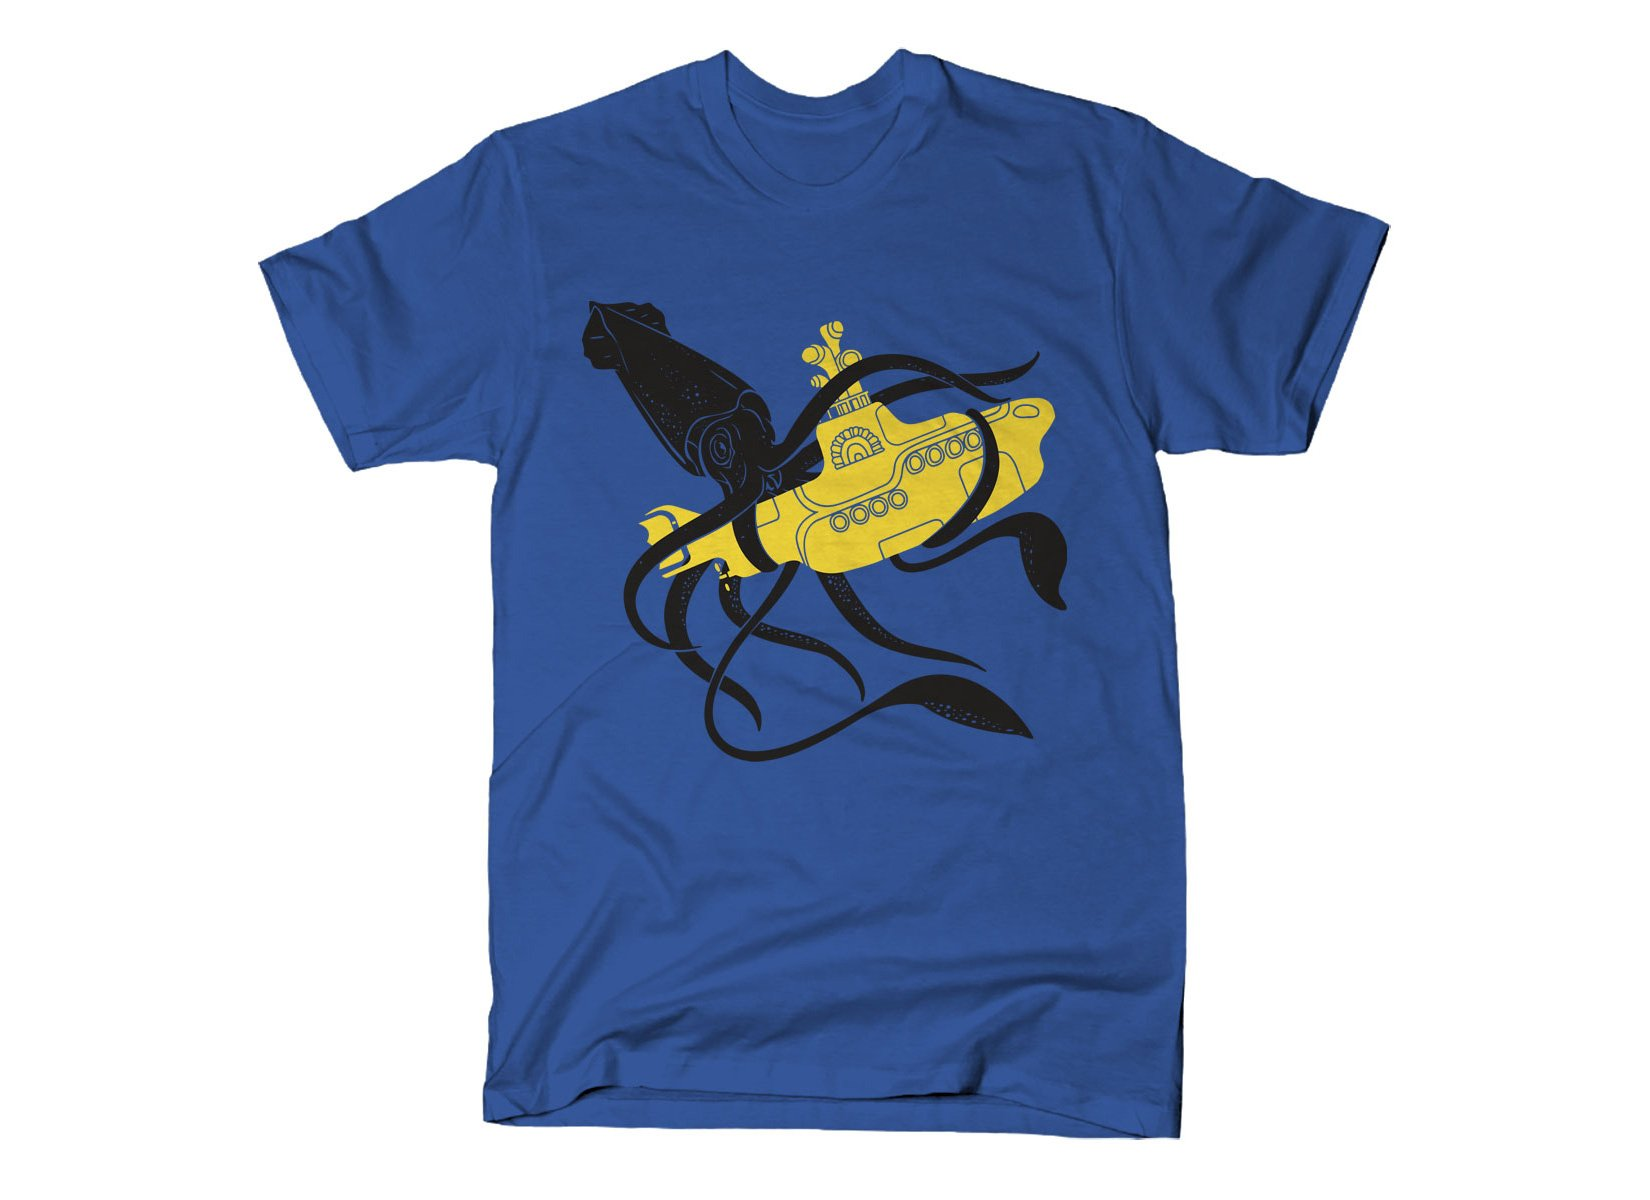 Squid Sub Battle on Mens T-Shirt